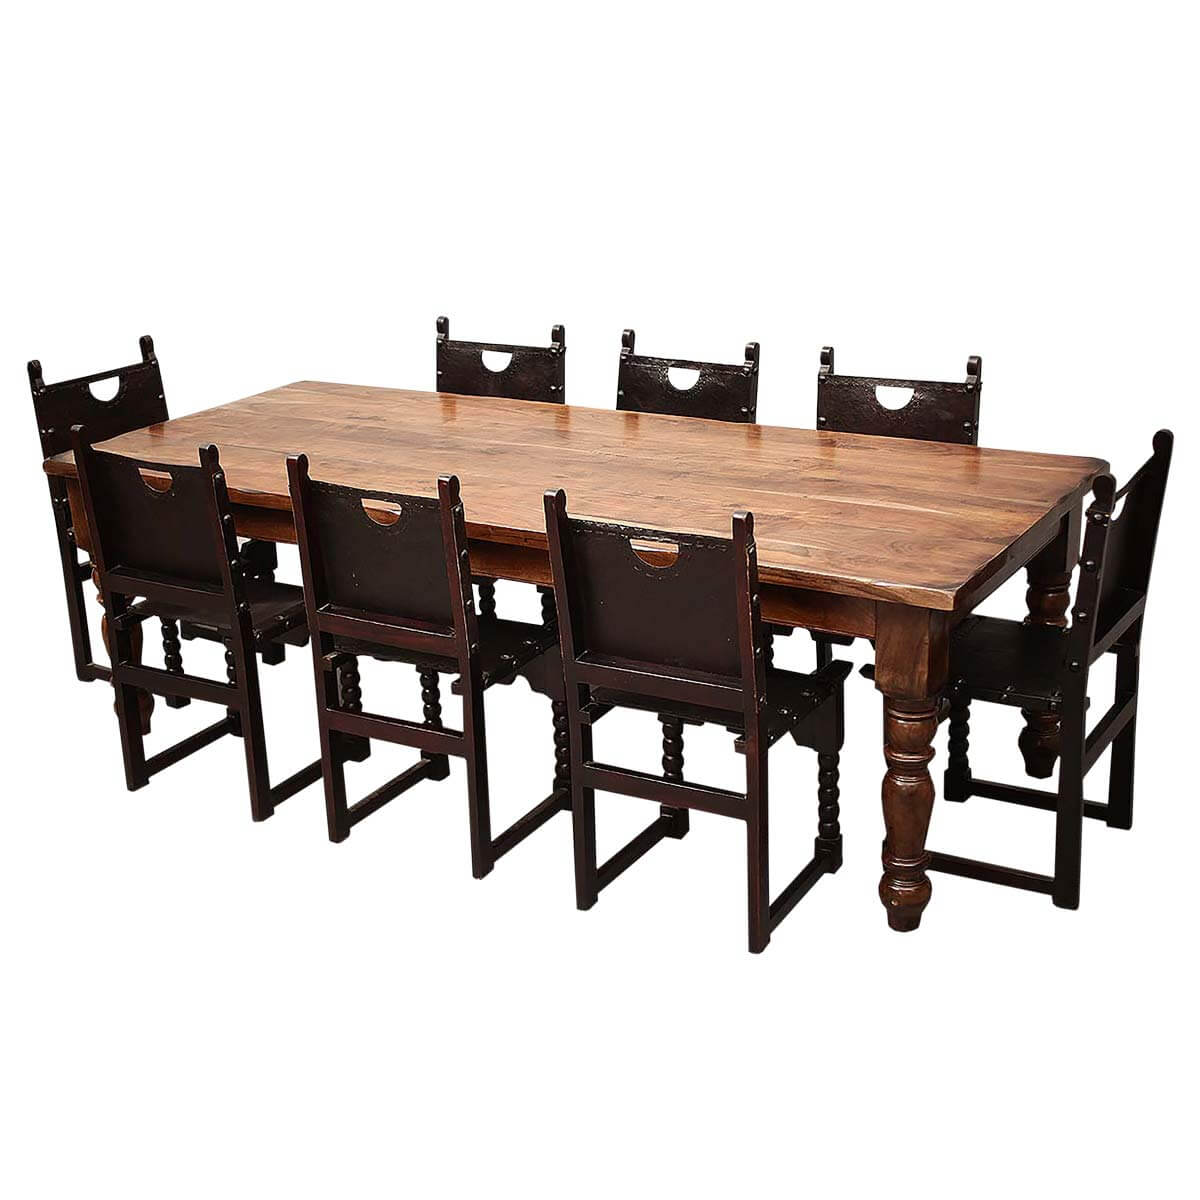 Dining table 8 people dining table size for Dining table length